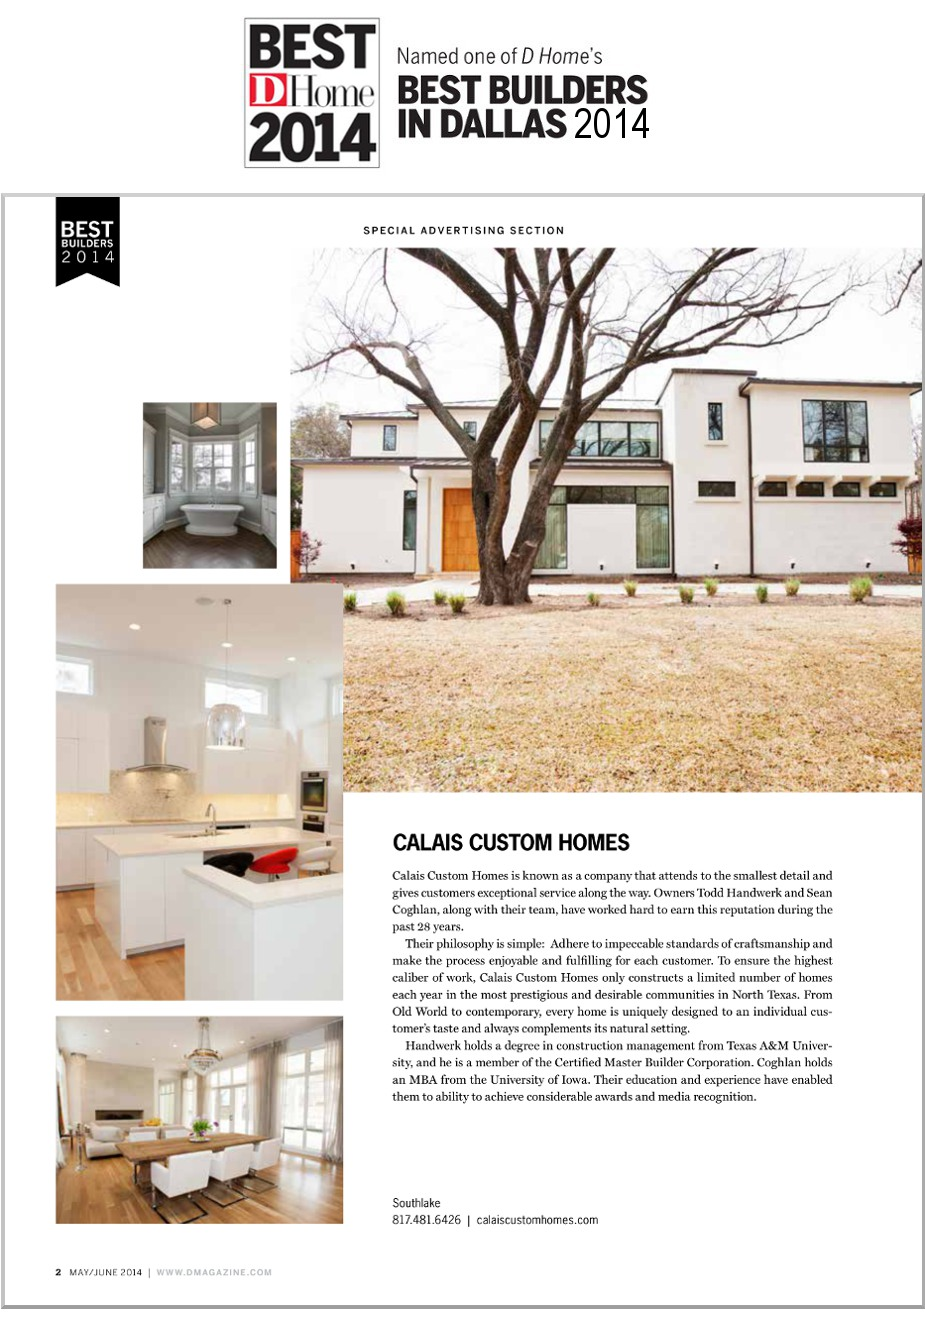 2014 DHome Best Builder Award Article